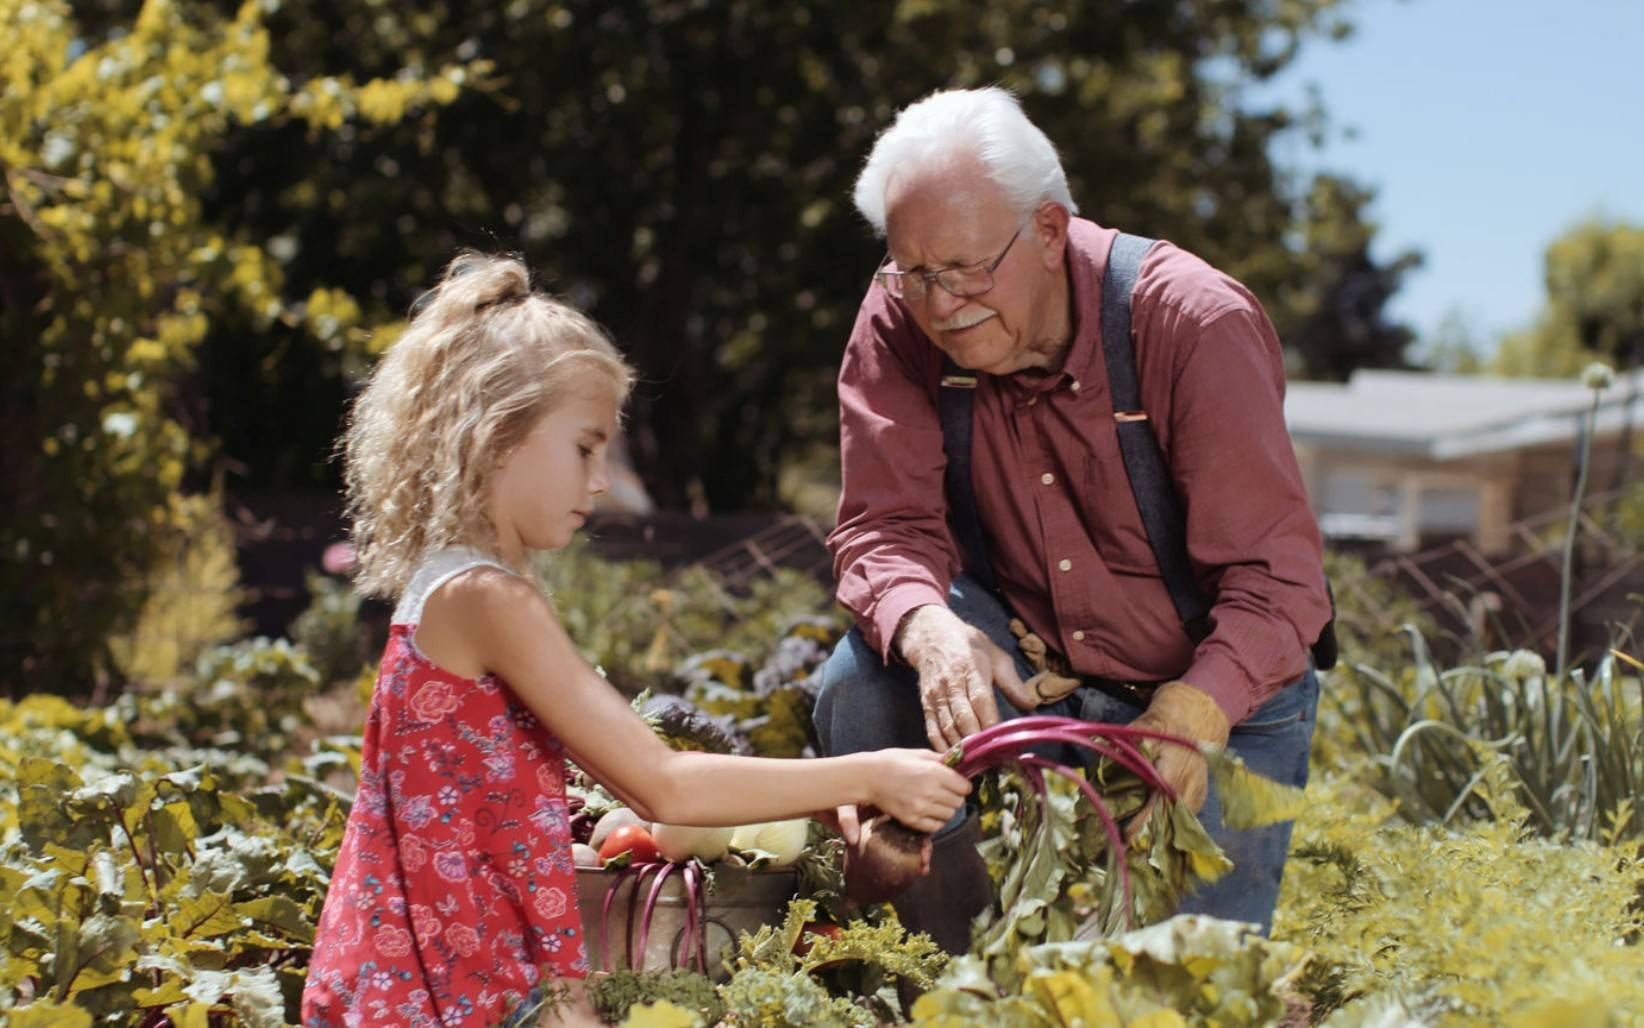 Grandpa and grand daughter in garden|Vegan-collagen-osteoporosis